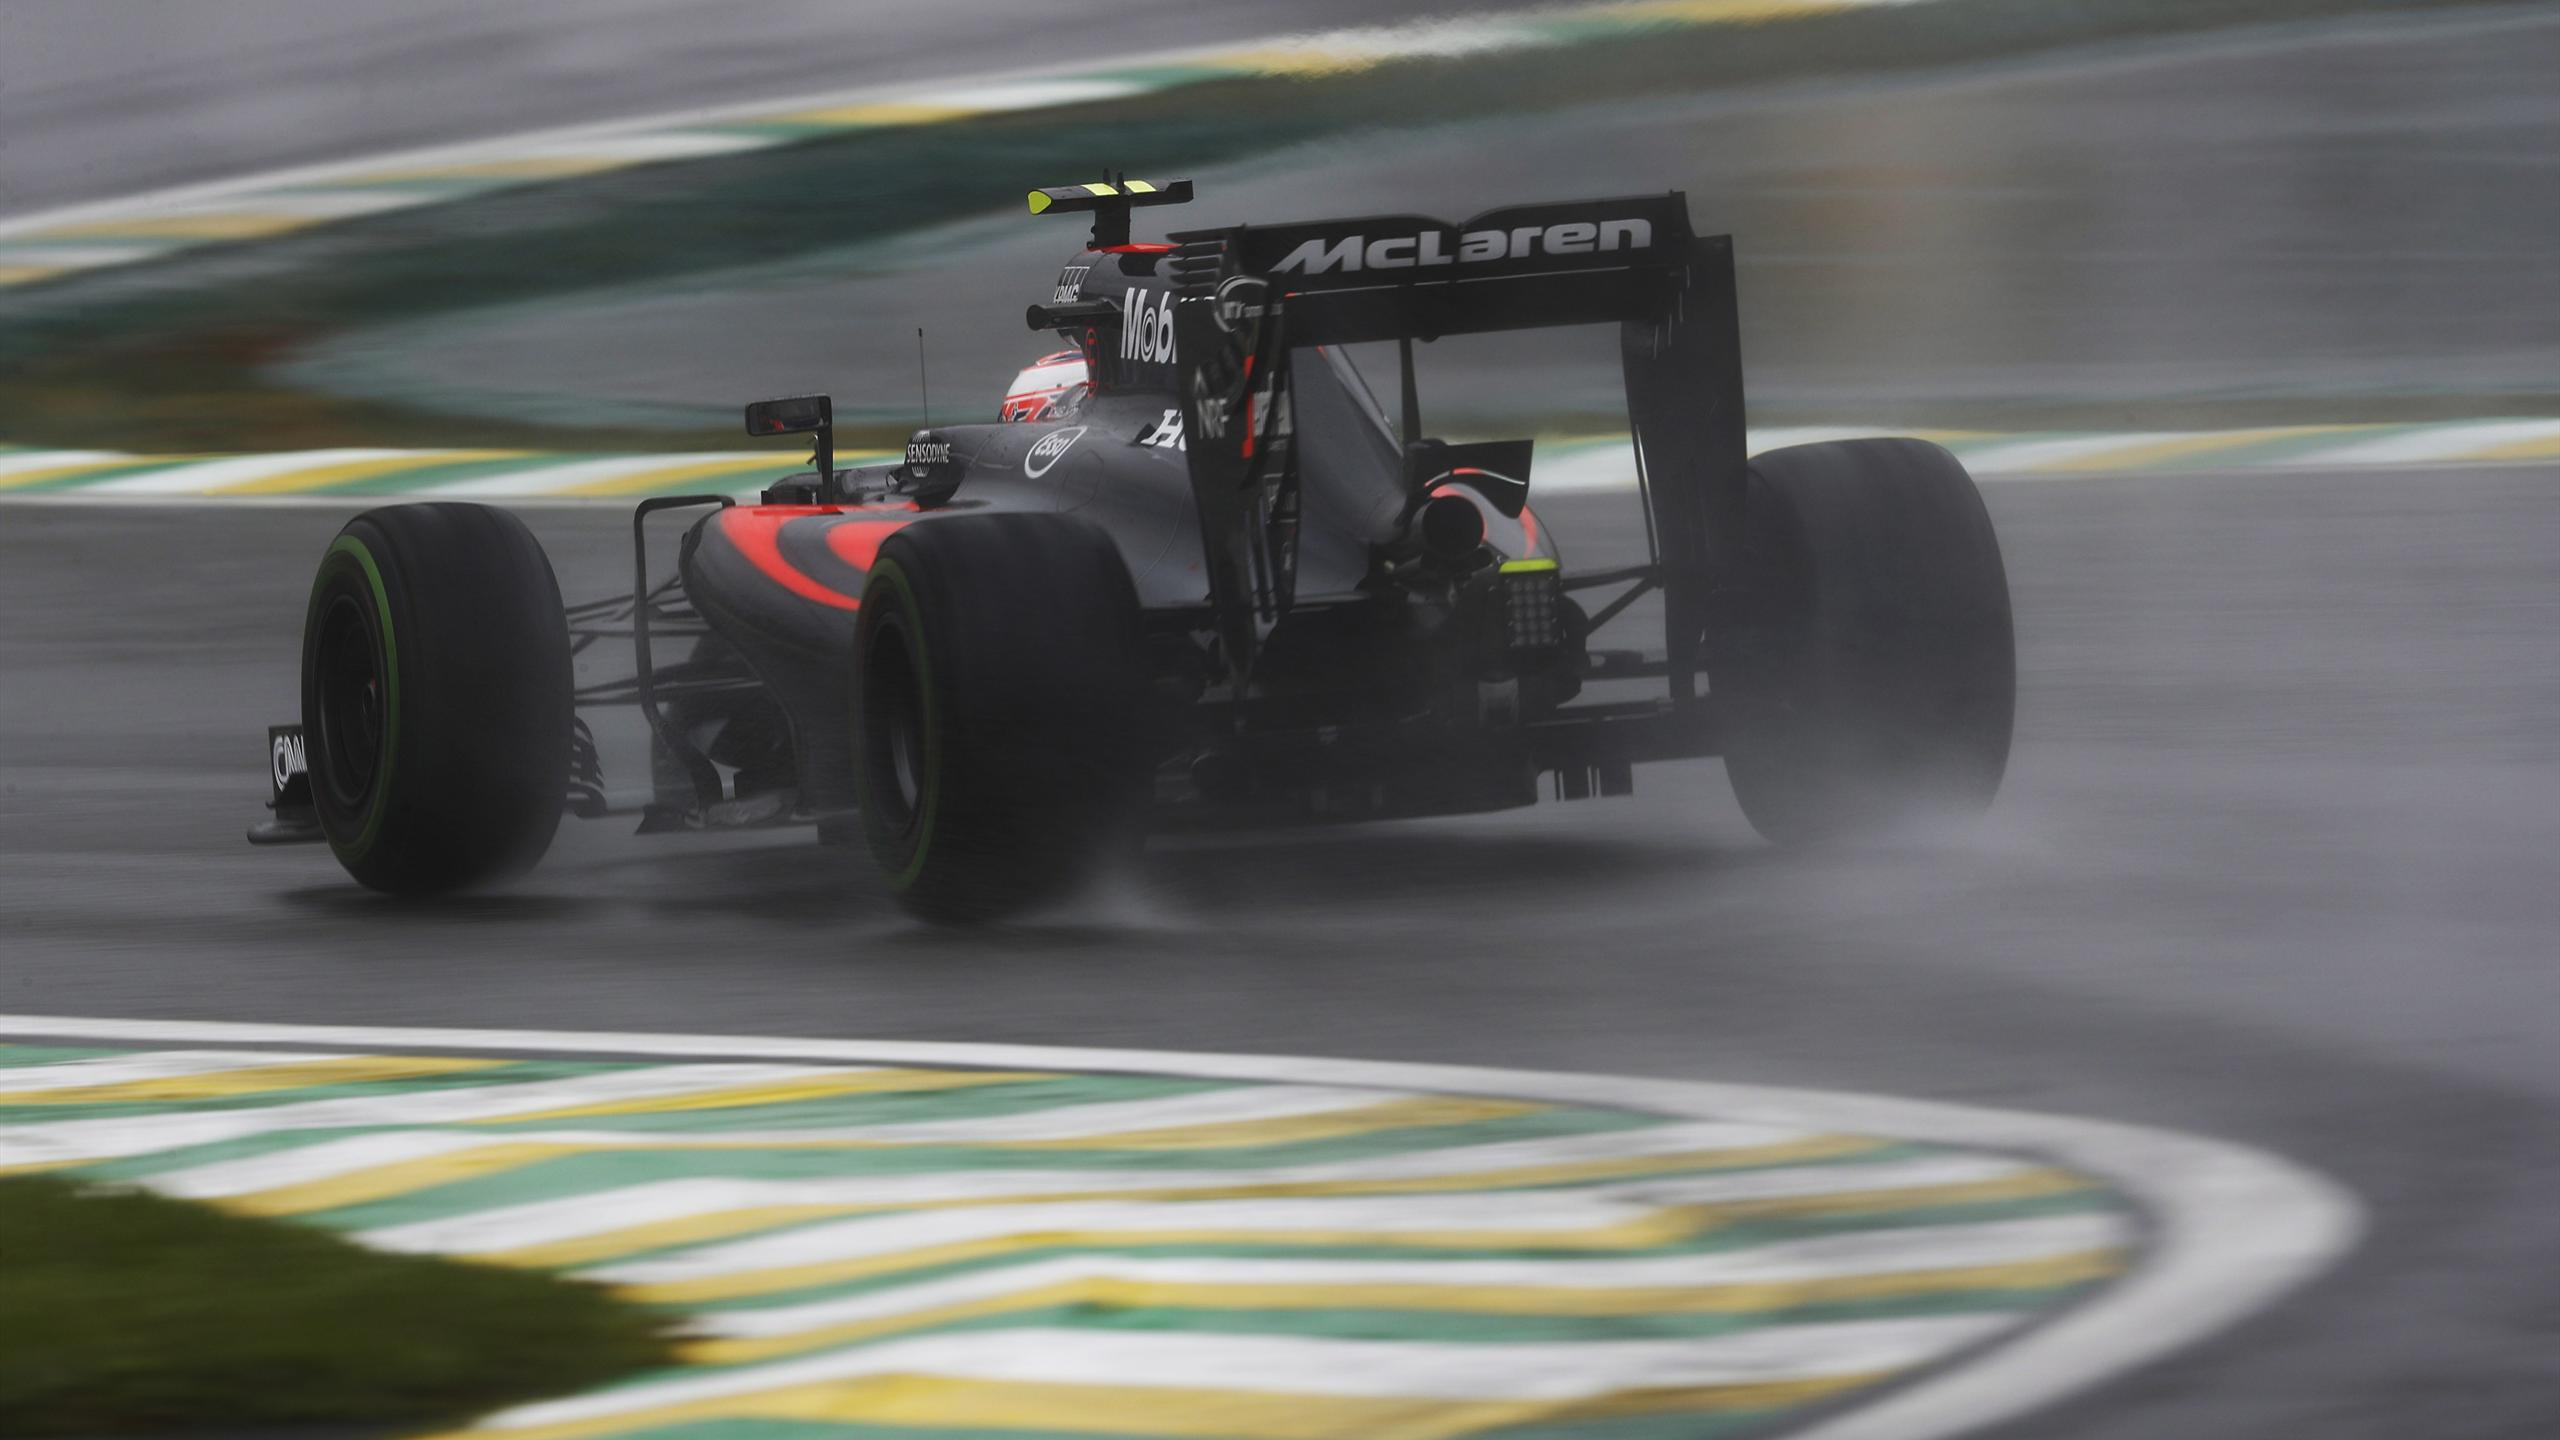 Jenson Button (McLaren) - GP of Brazil 2016